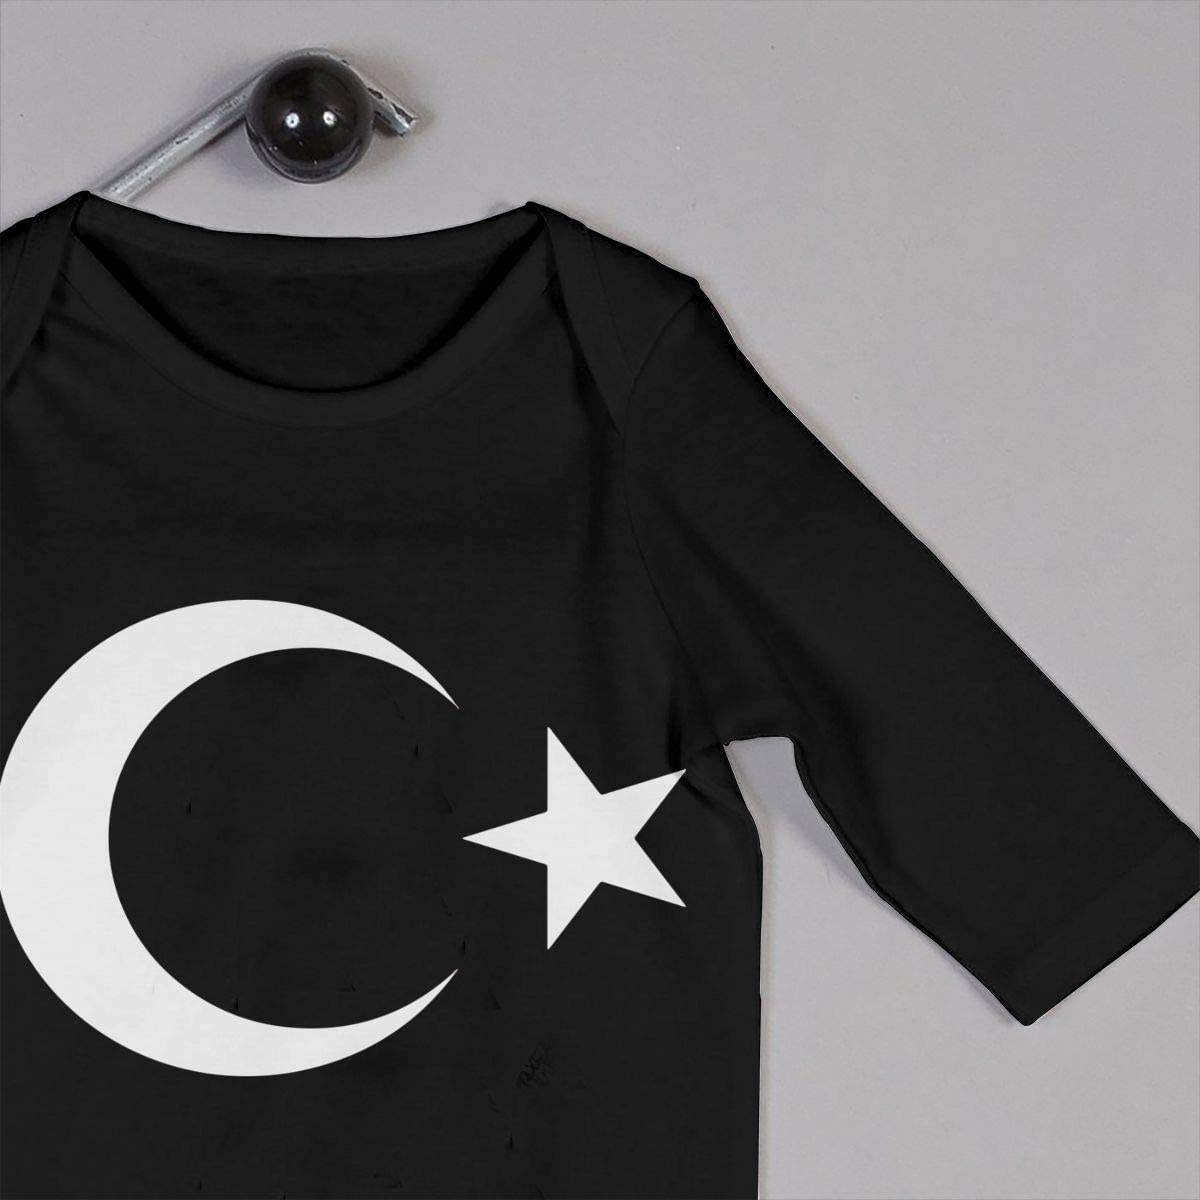 Turkey Flag Symbol Organic One-Piece Bodysuits Coverall Outfits BKNGDG8Q Unisex Baby Romper Jumpsuit